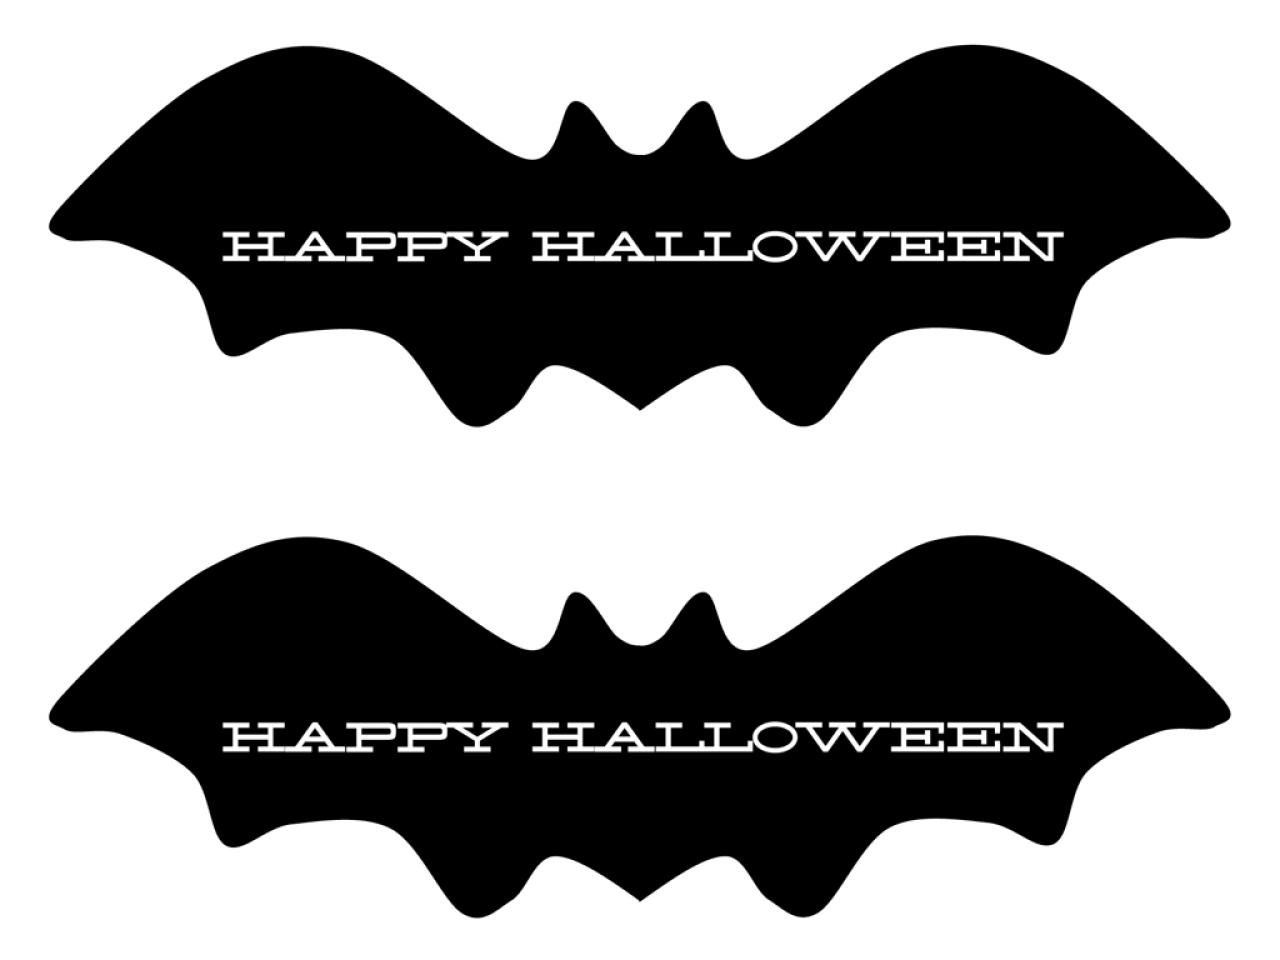 41 Printable (and Free!) Halloween Templates | HGTV